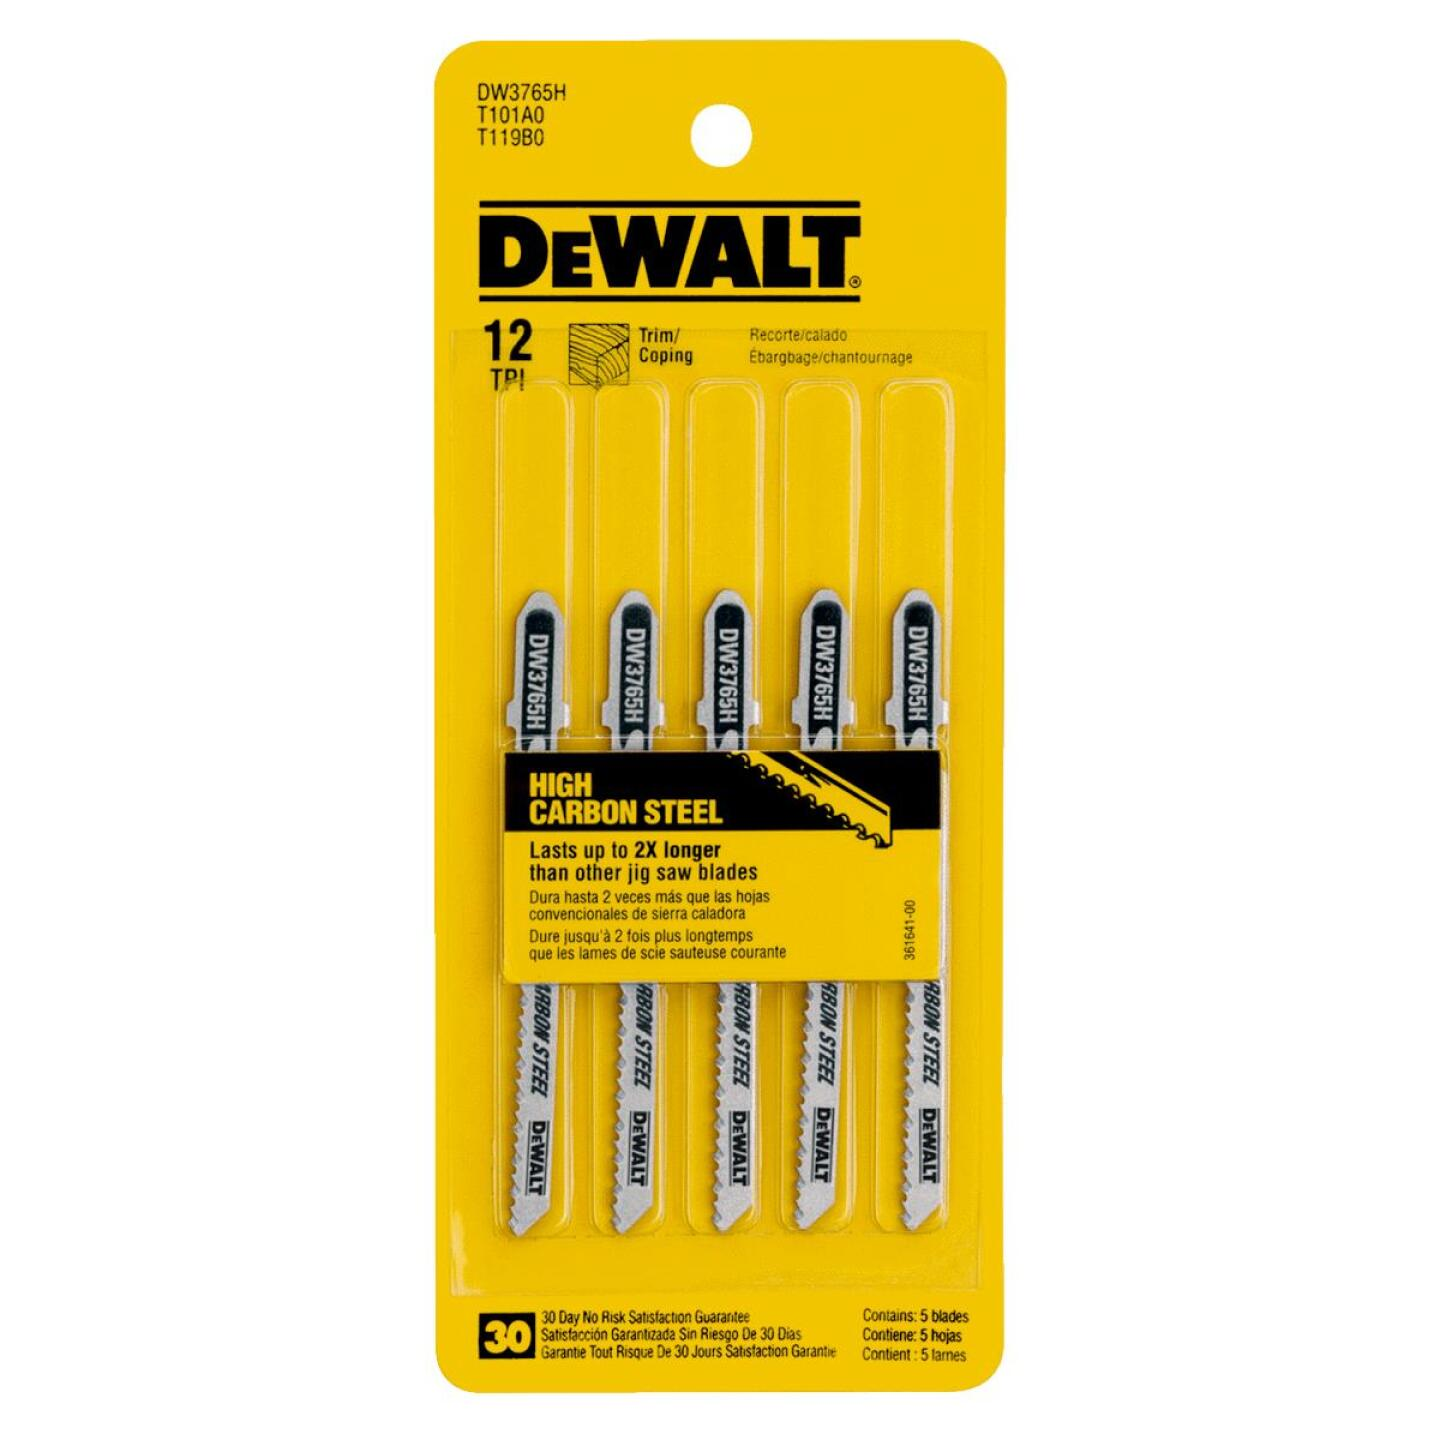 DeWalt T-Shank 3 In. x 12 TPI High Carbon Steel Jig Saw Blade, Trim/Coping Wood (5-Pack) Image 2